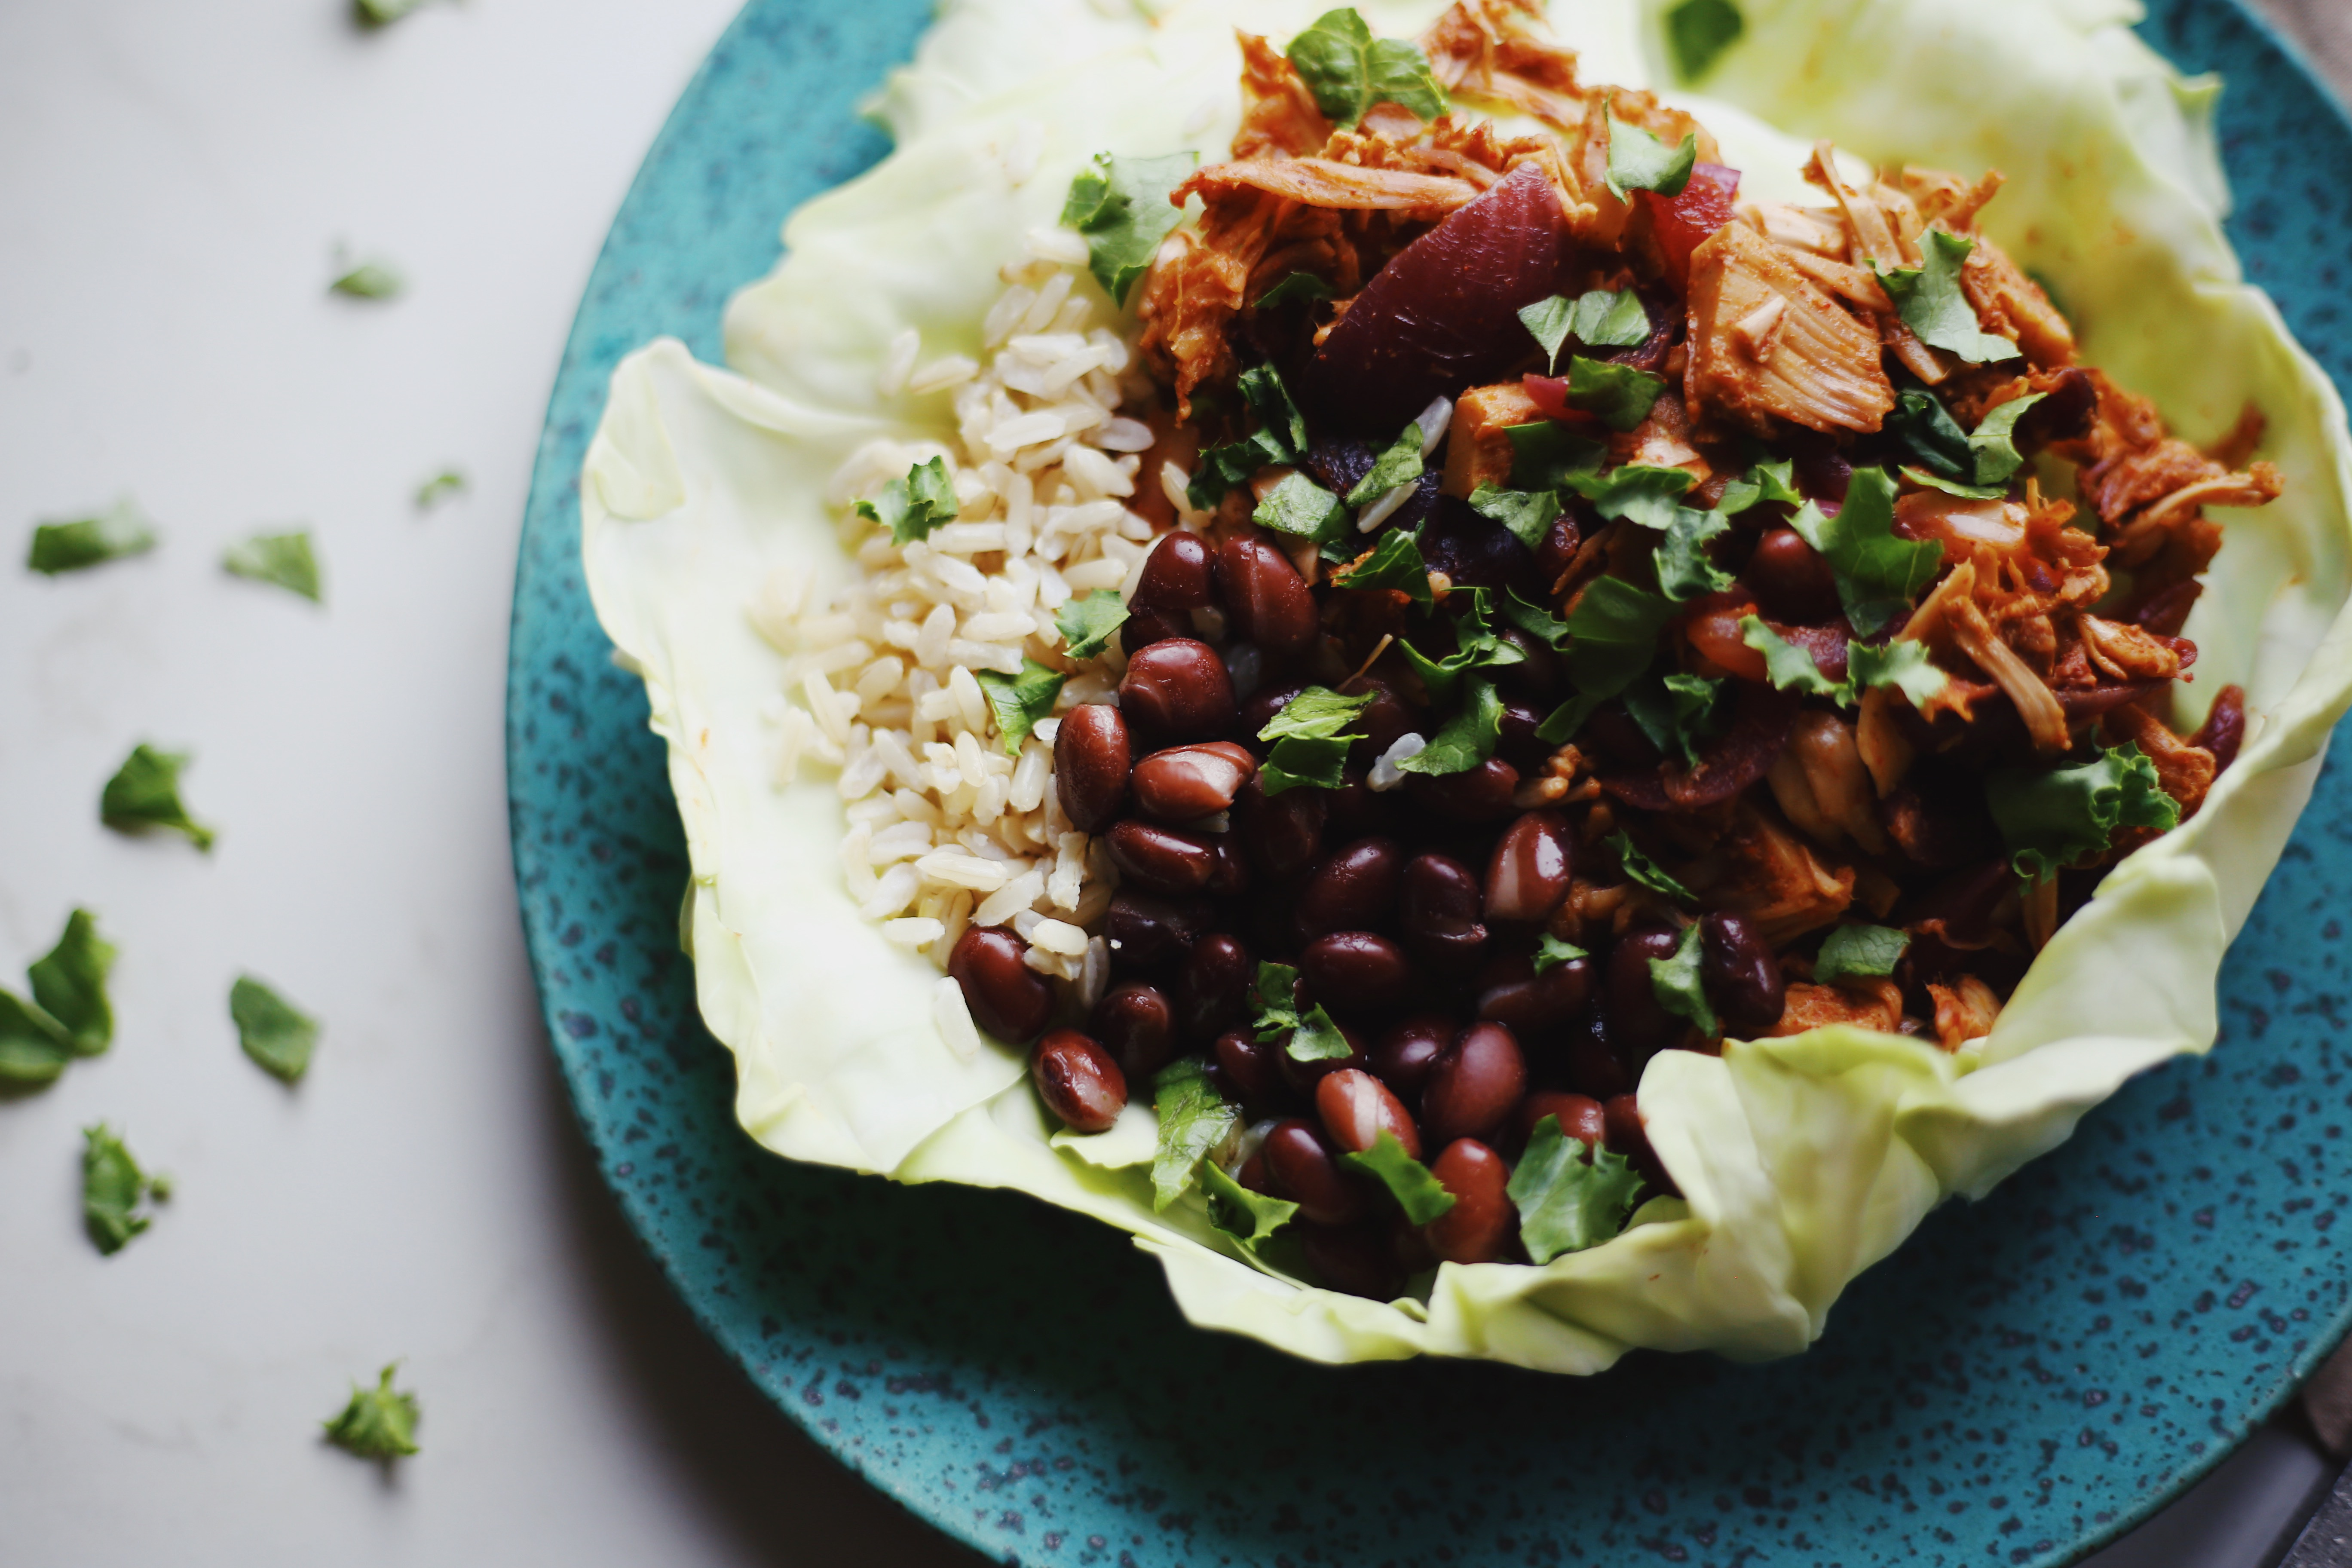 Vegan Mexican Jackfruit Bowls Gluten Free by The Local Sprout